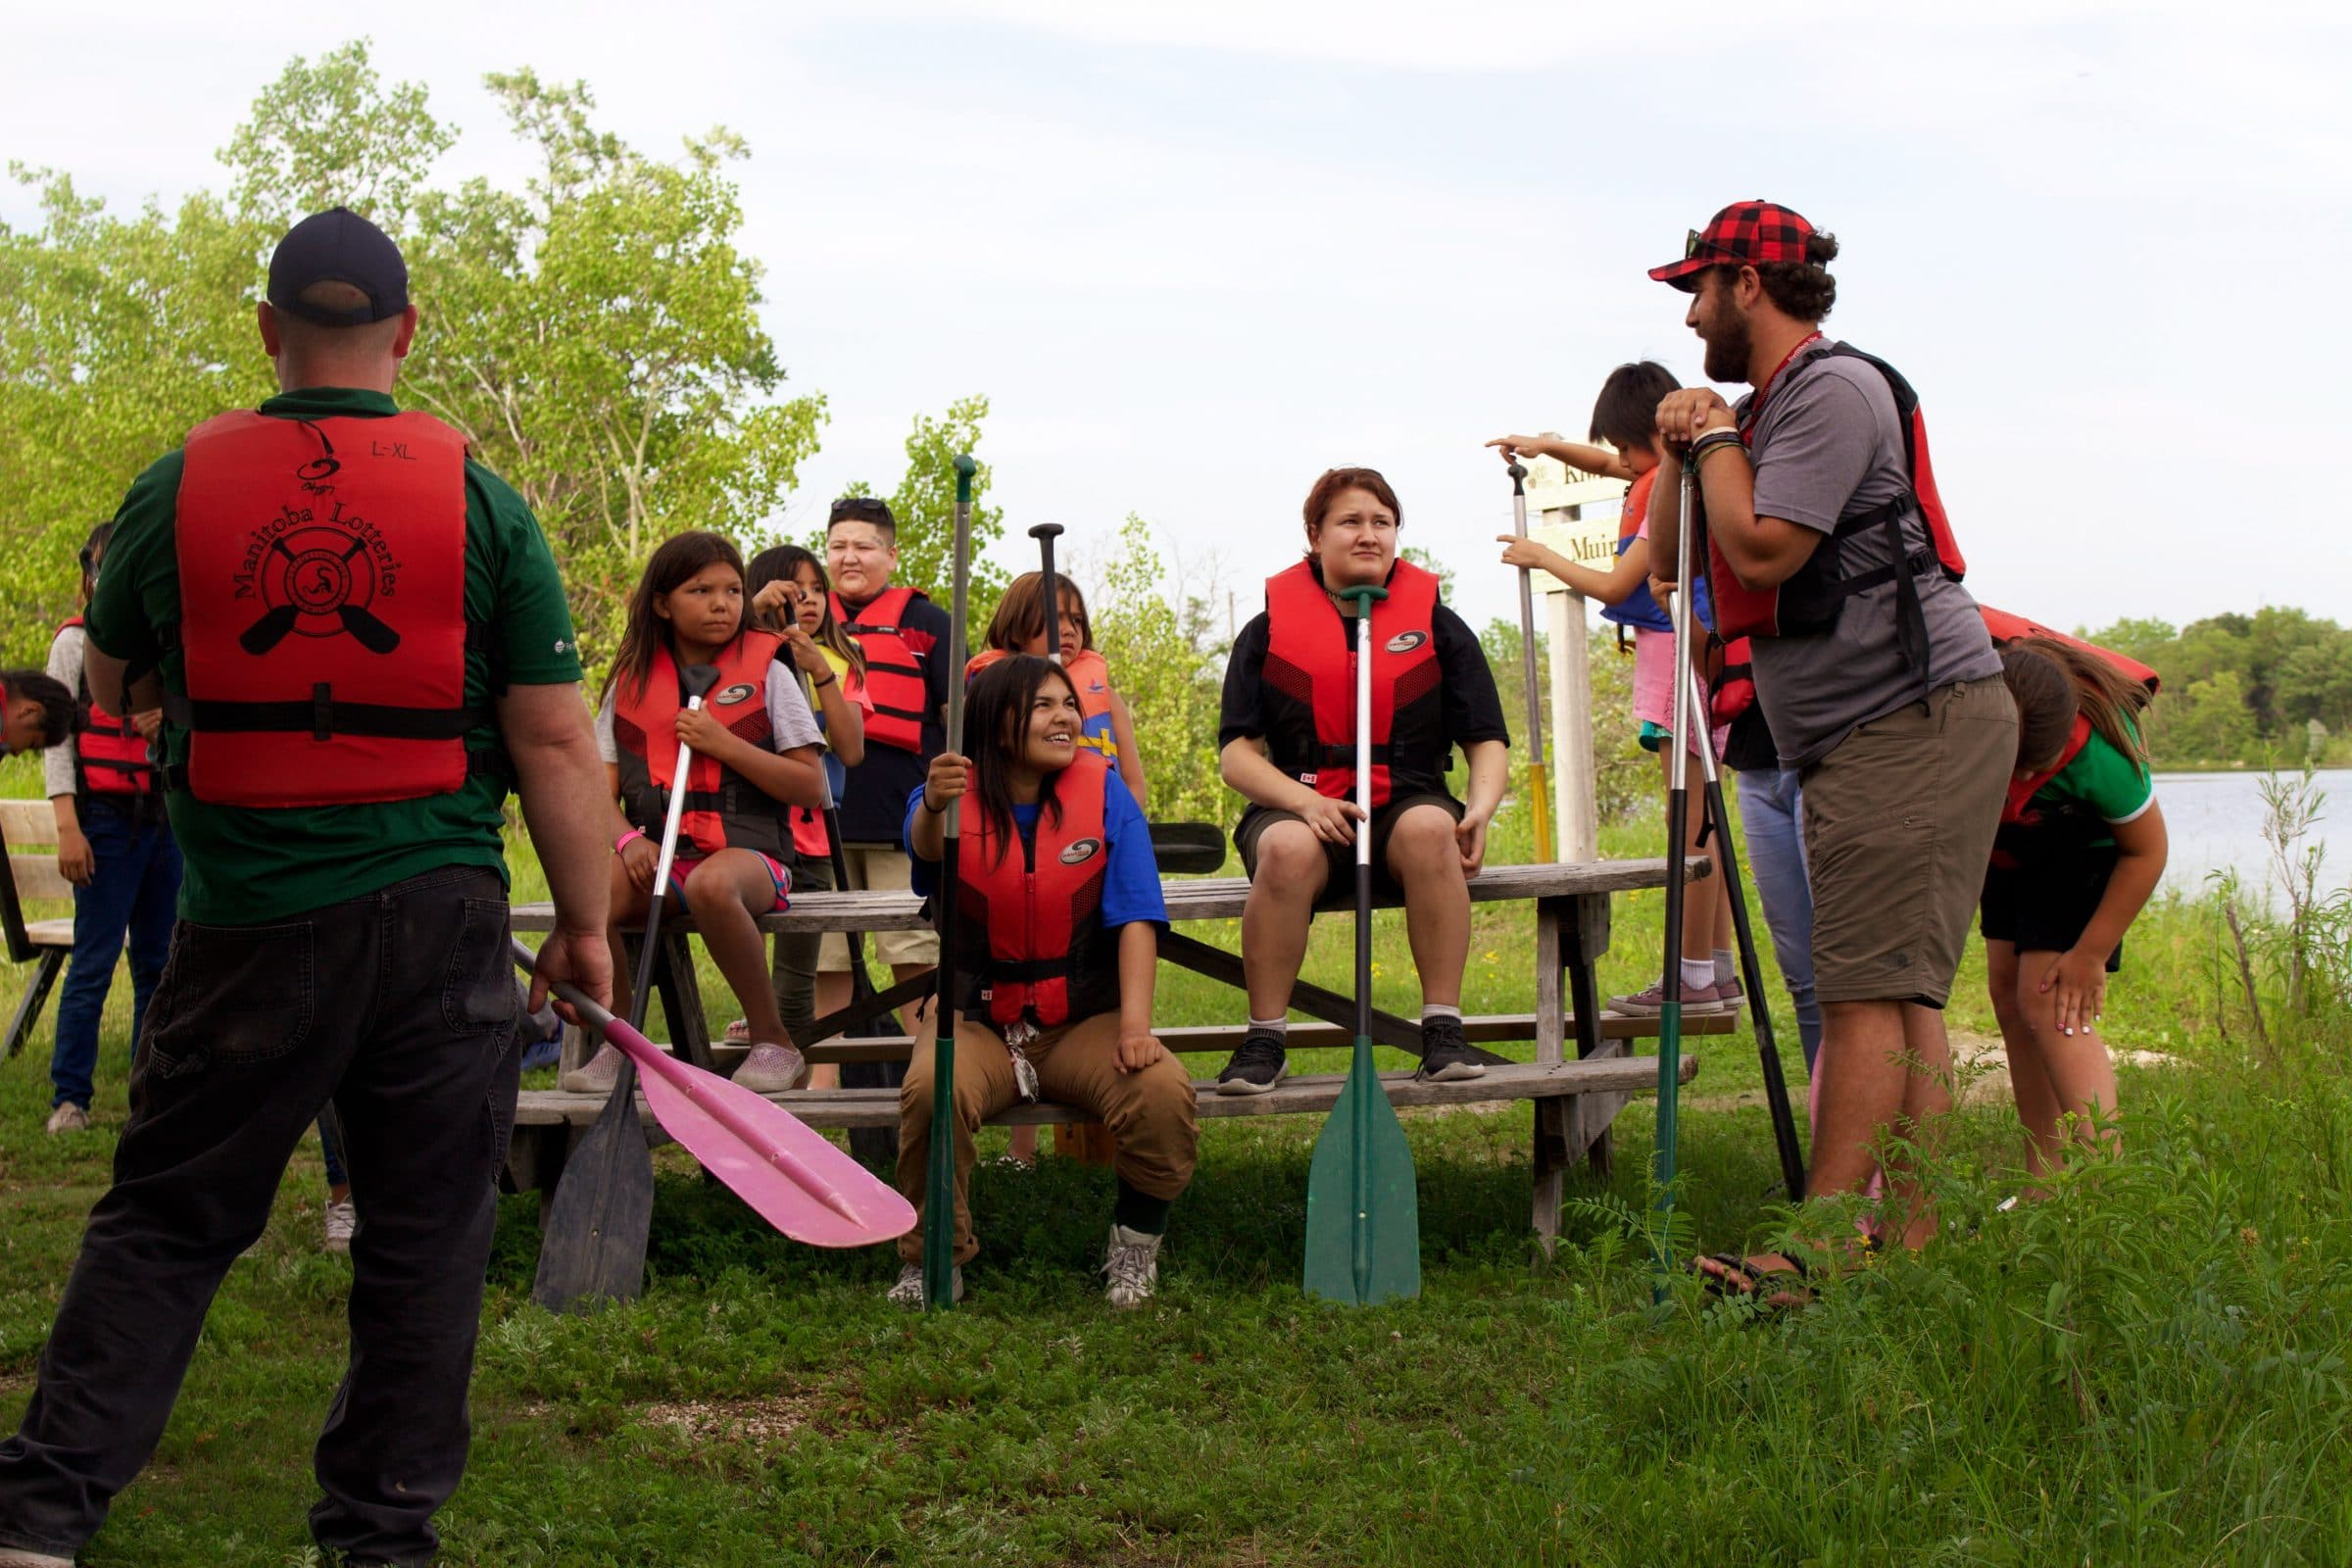 A group of youth and adults gather around a picnic table wearing life jackets, smiling and laughing together.